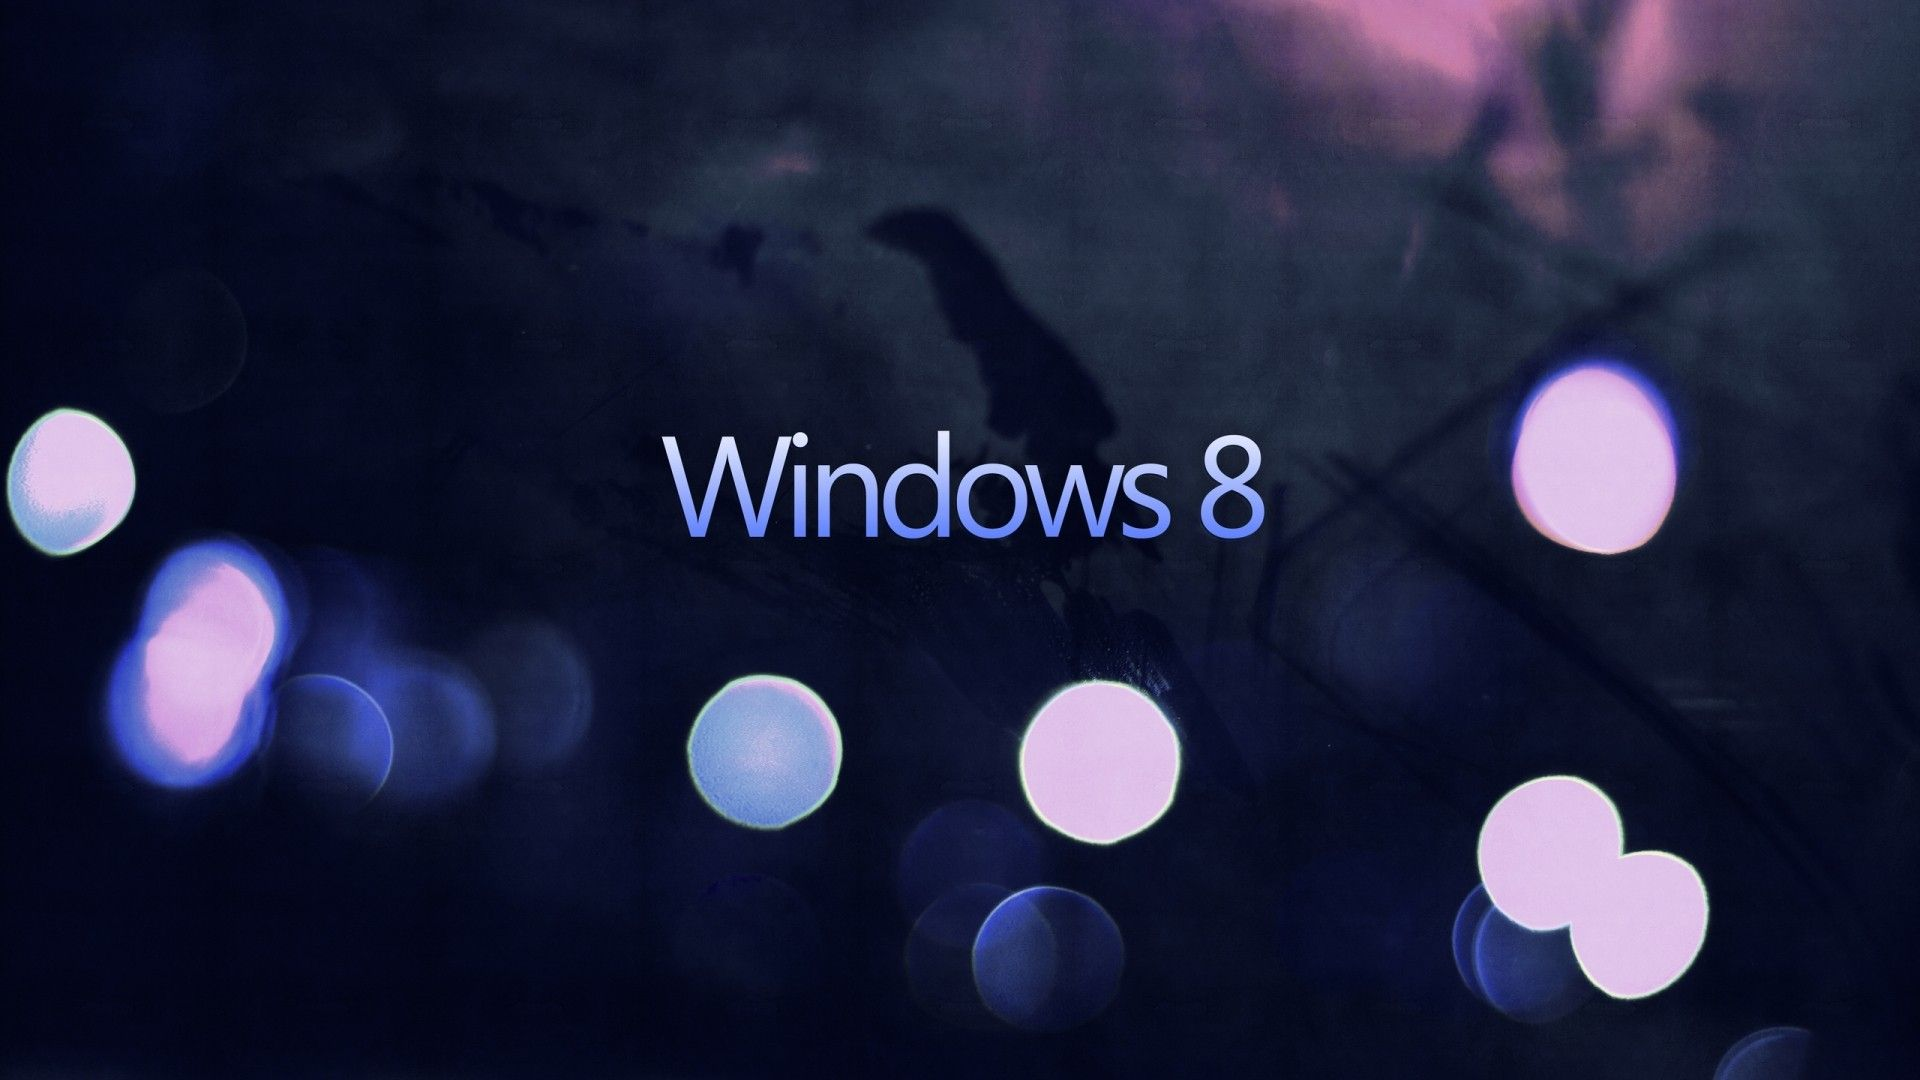 windows 8 background hd wide wallpaper for widescreen wallpapers hd wallpapers